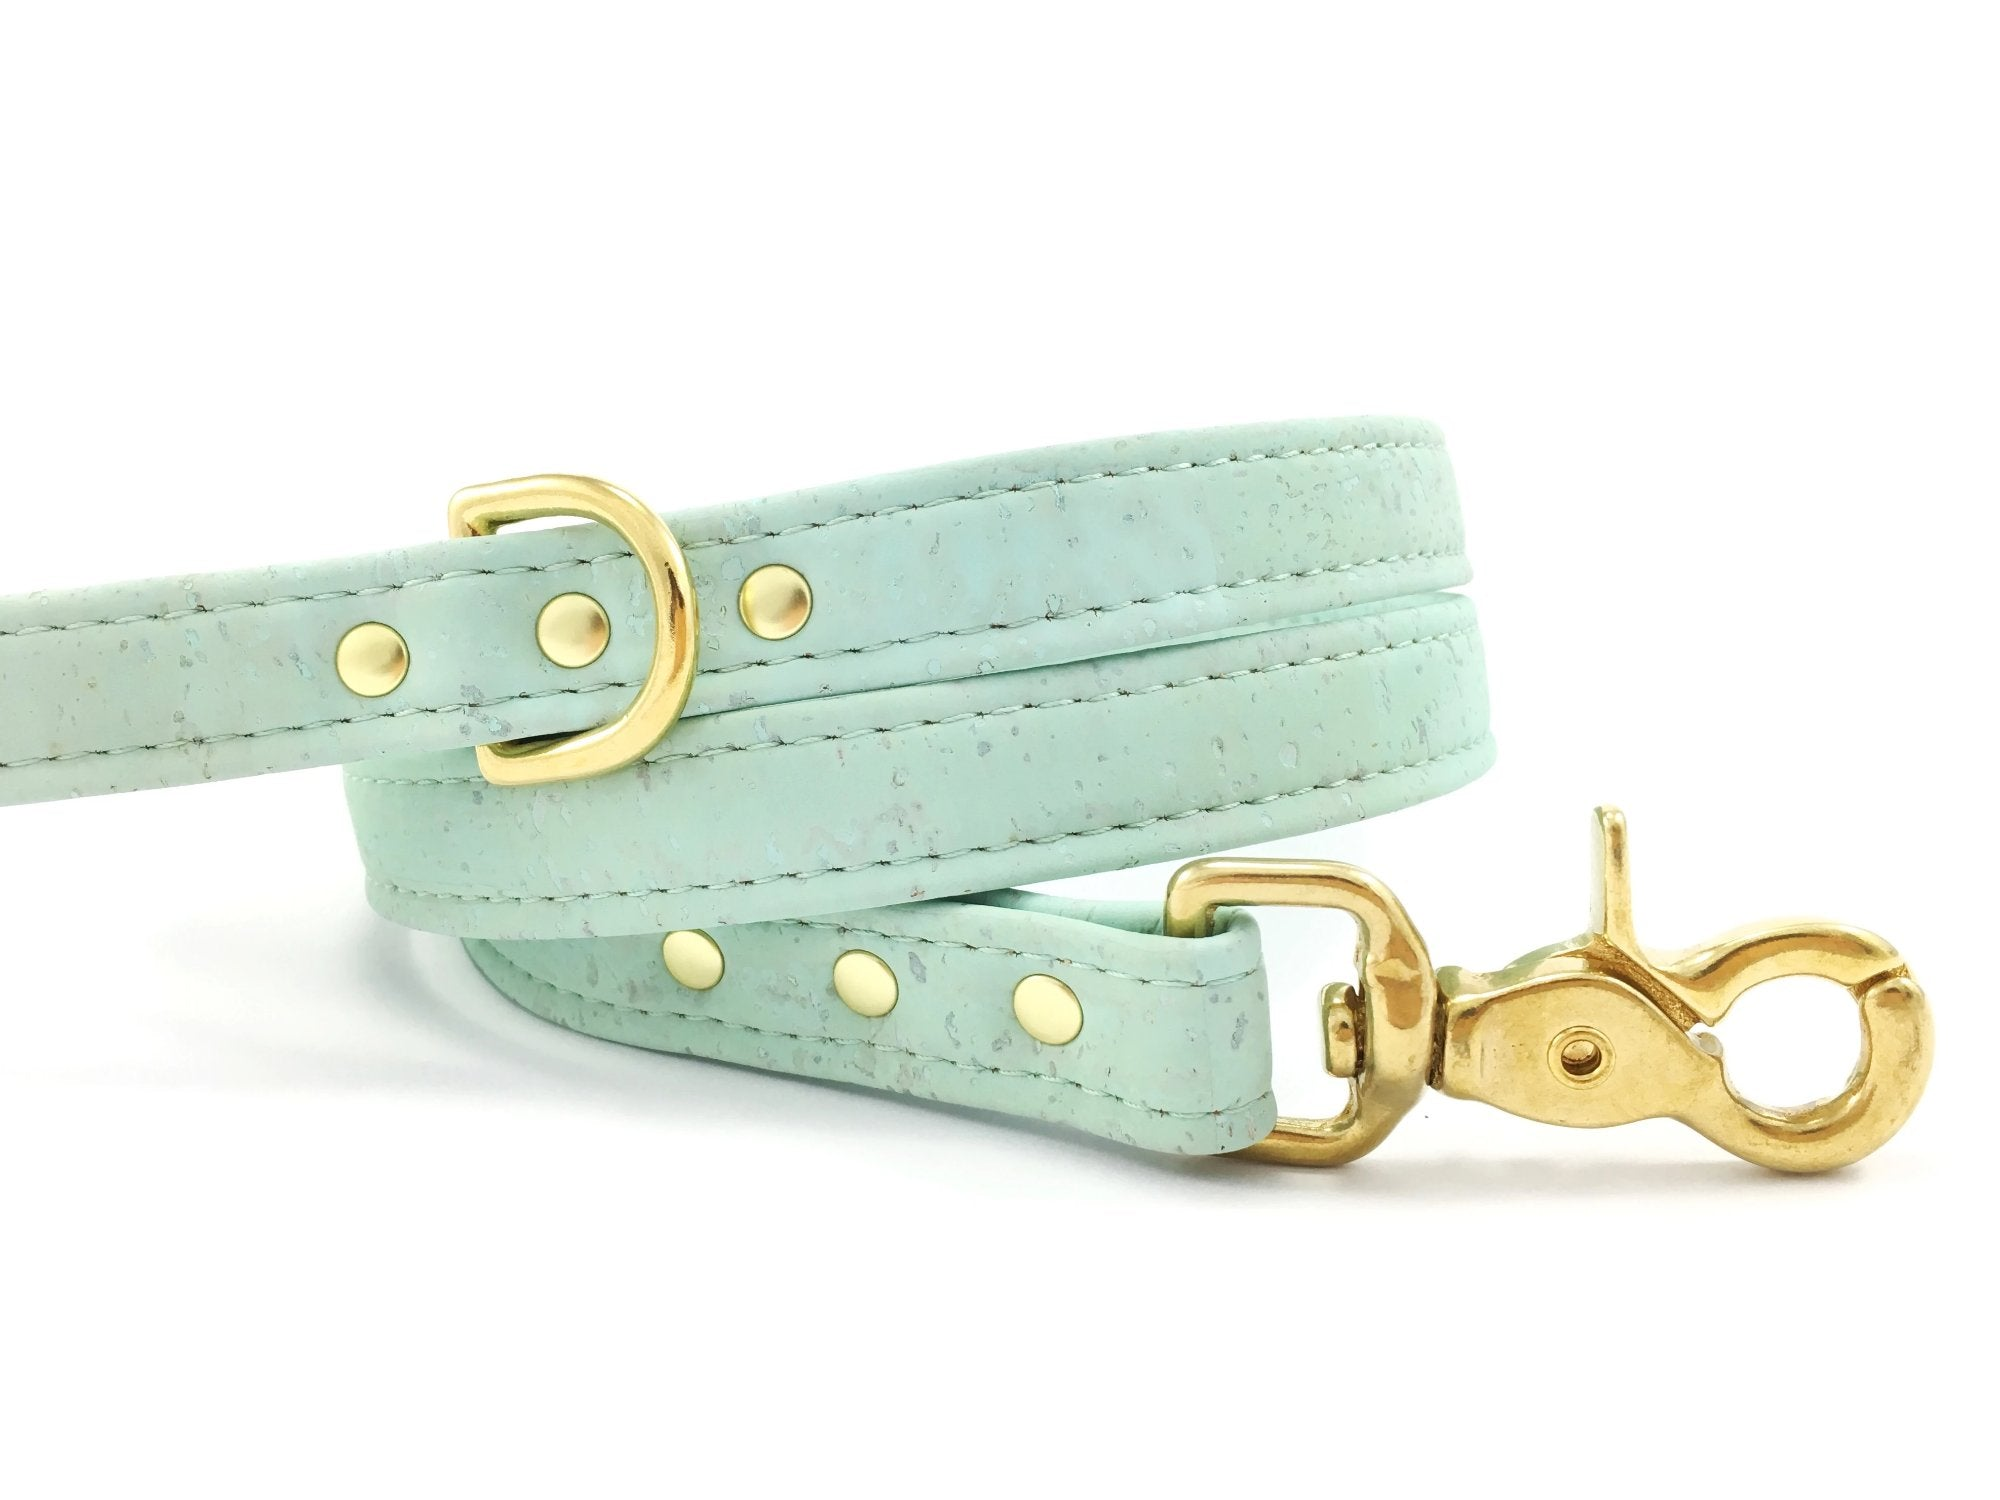 Mint green dog lead in unique vegan cork leather with luxury brass hardware, made in the UK